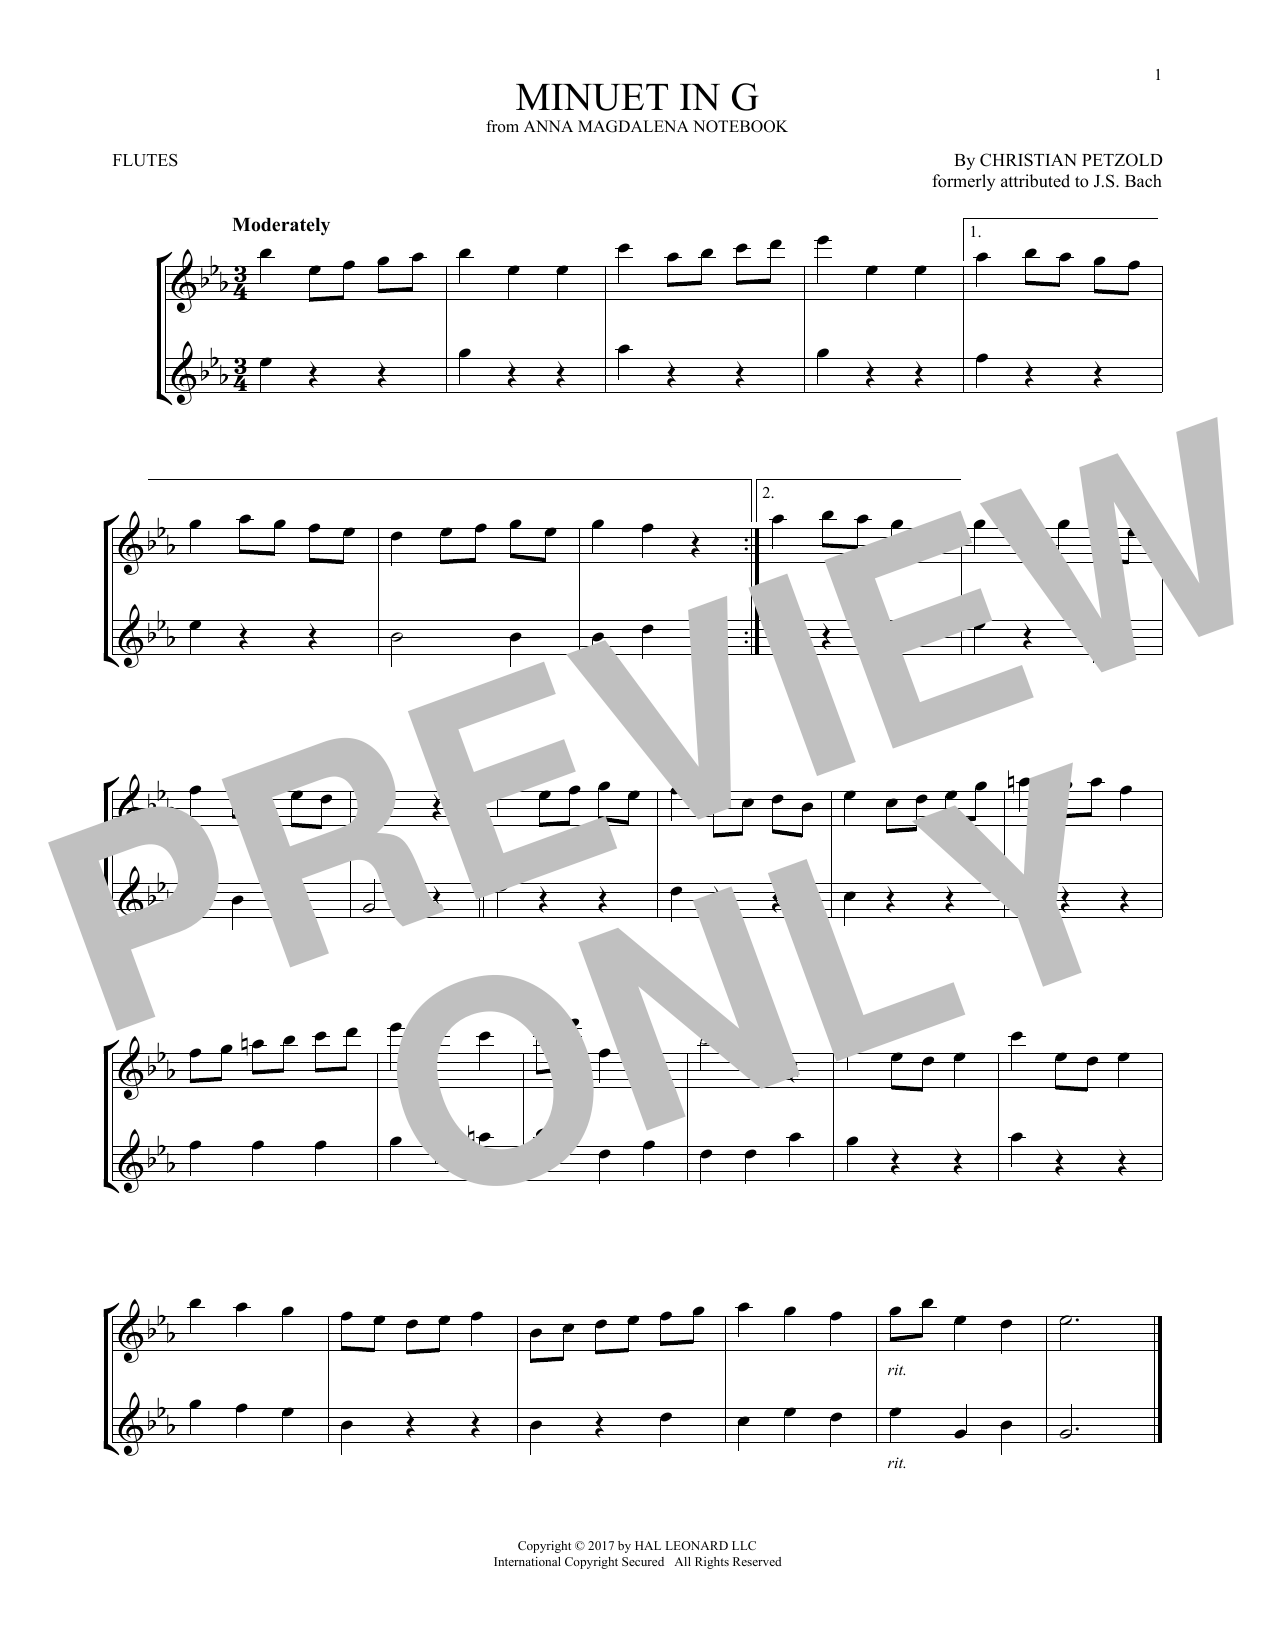 Christian Petzold Minuet In G Major, BWV Anh. 114 sheet music notes and chords